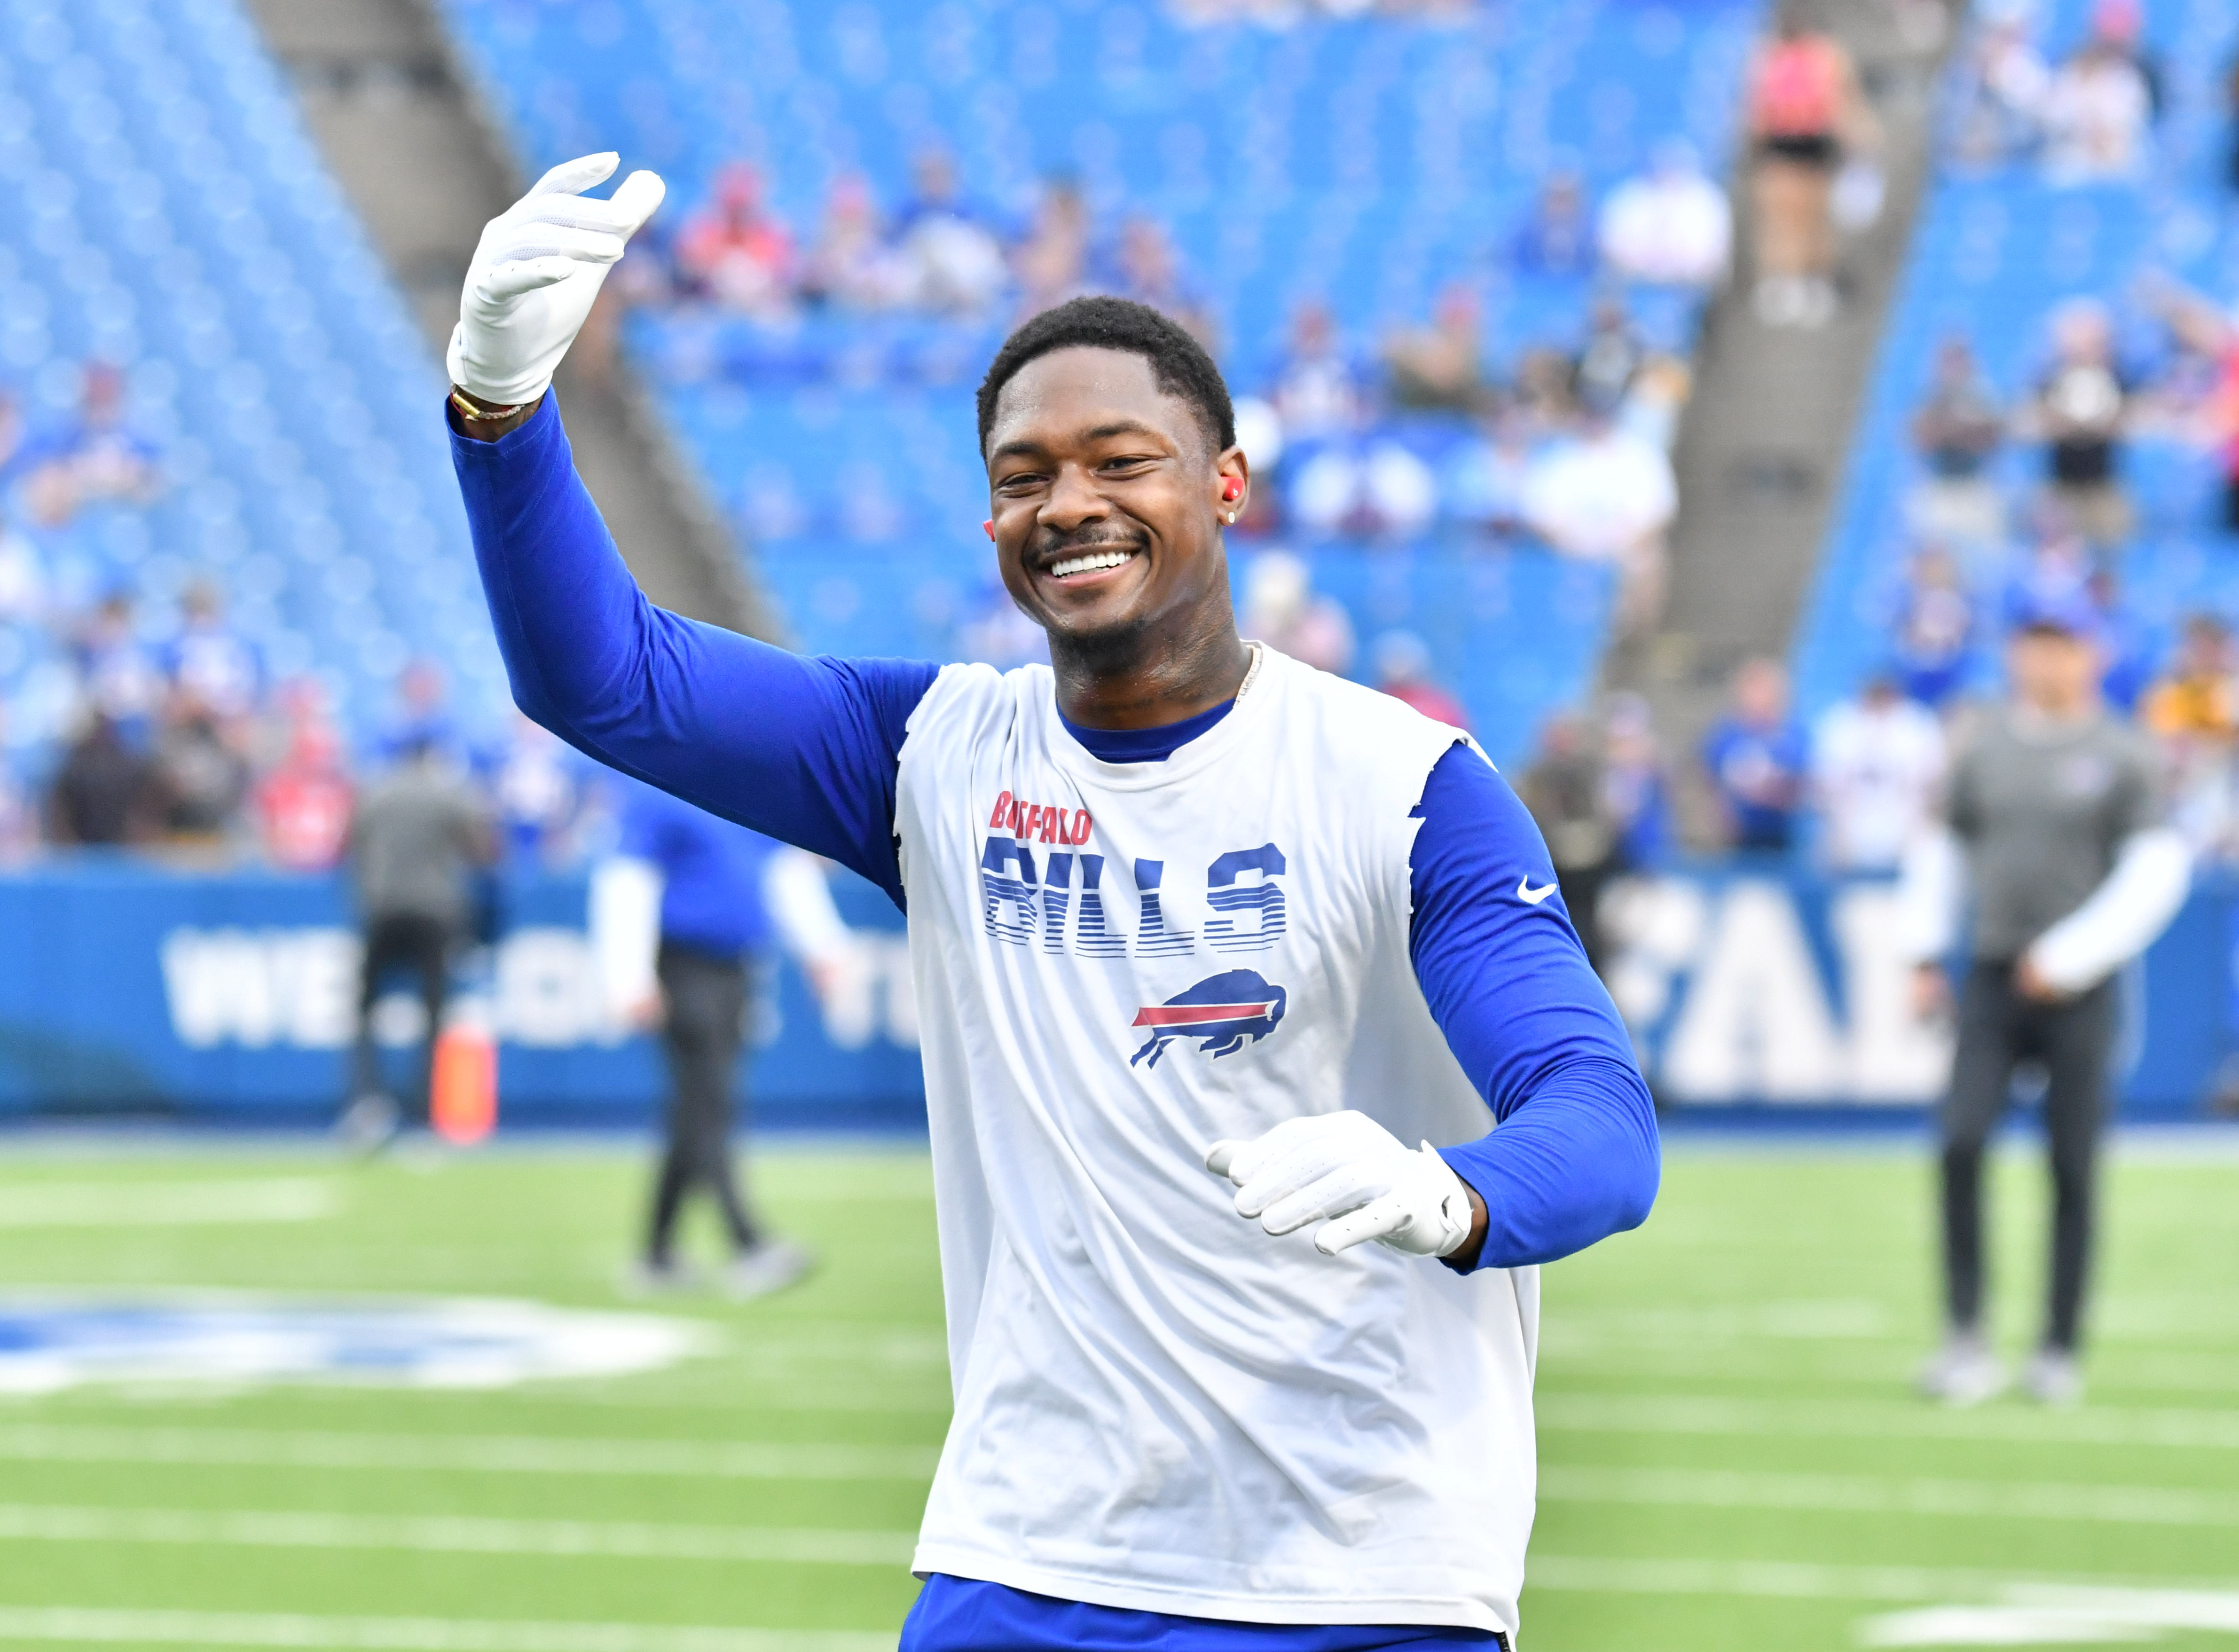 Buffalo Bills wide receiver Stefon Diggs (14) warms up prior to a game against the Pittsburgh Steelers at Highmark Stadium.